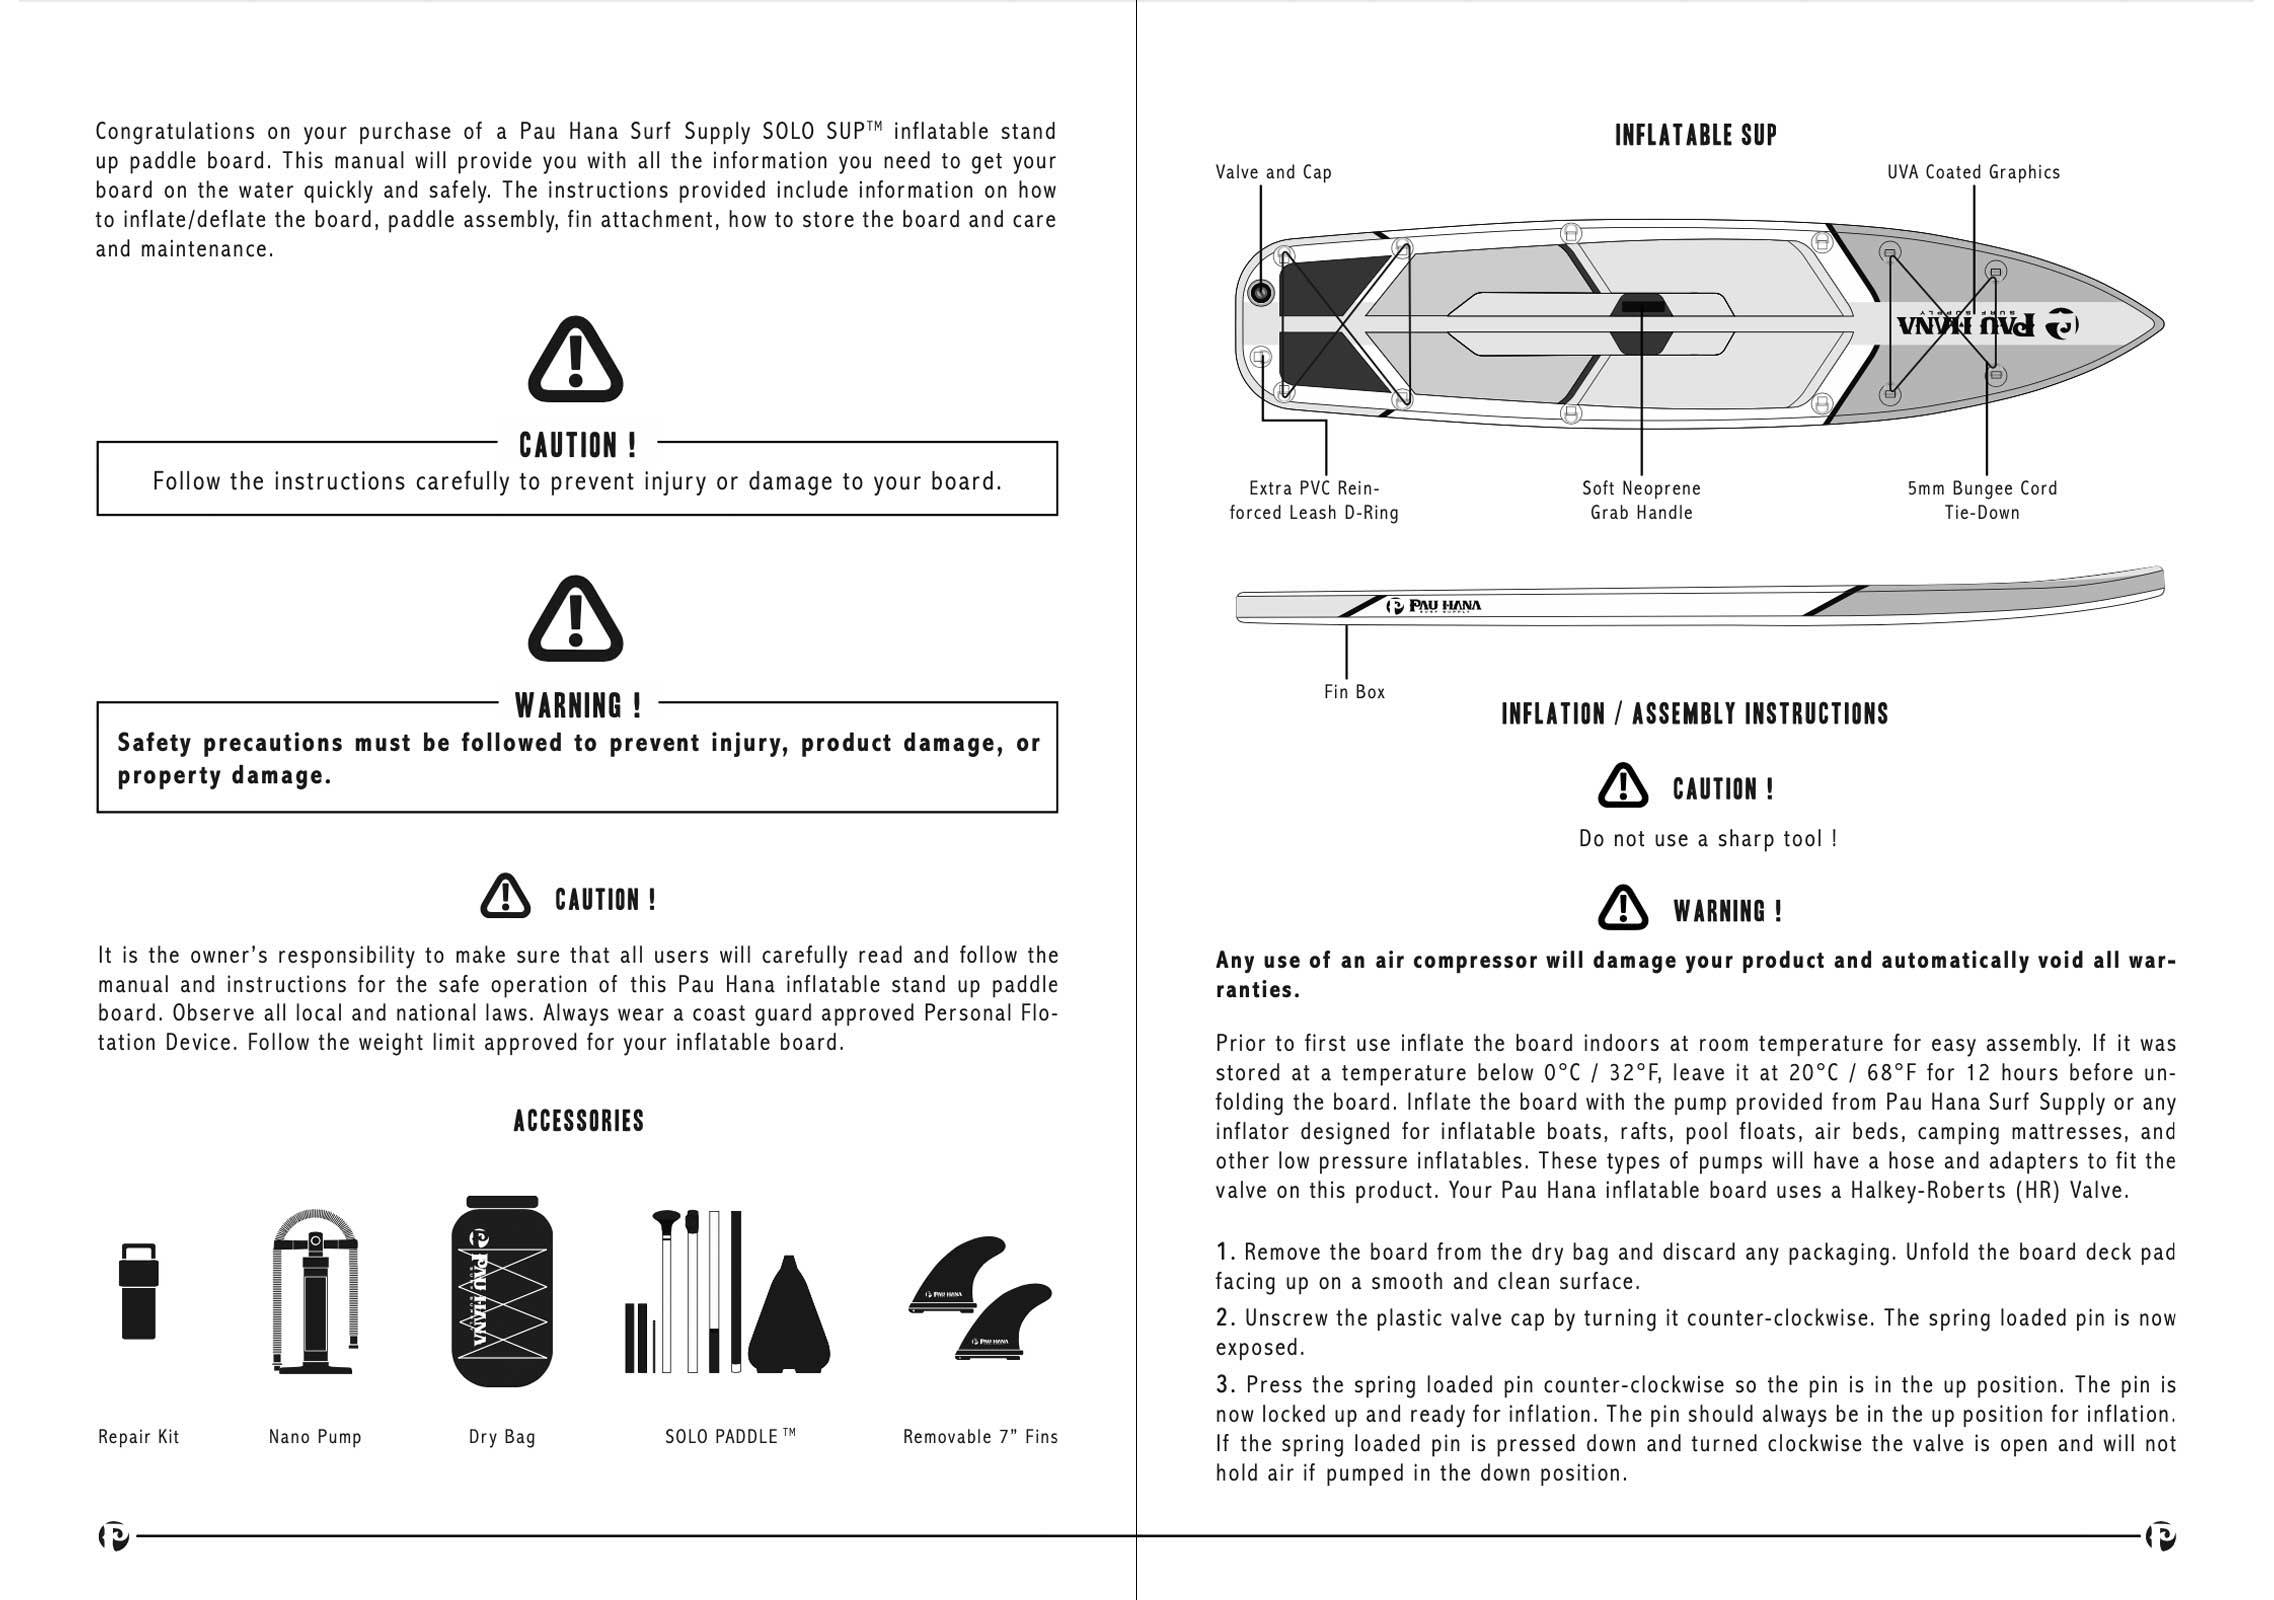 pau hana Solo SUP Backcountry inflatable stand up paddle board user manual page 2-3